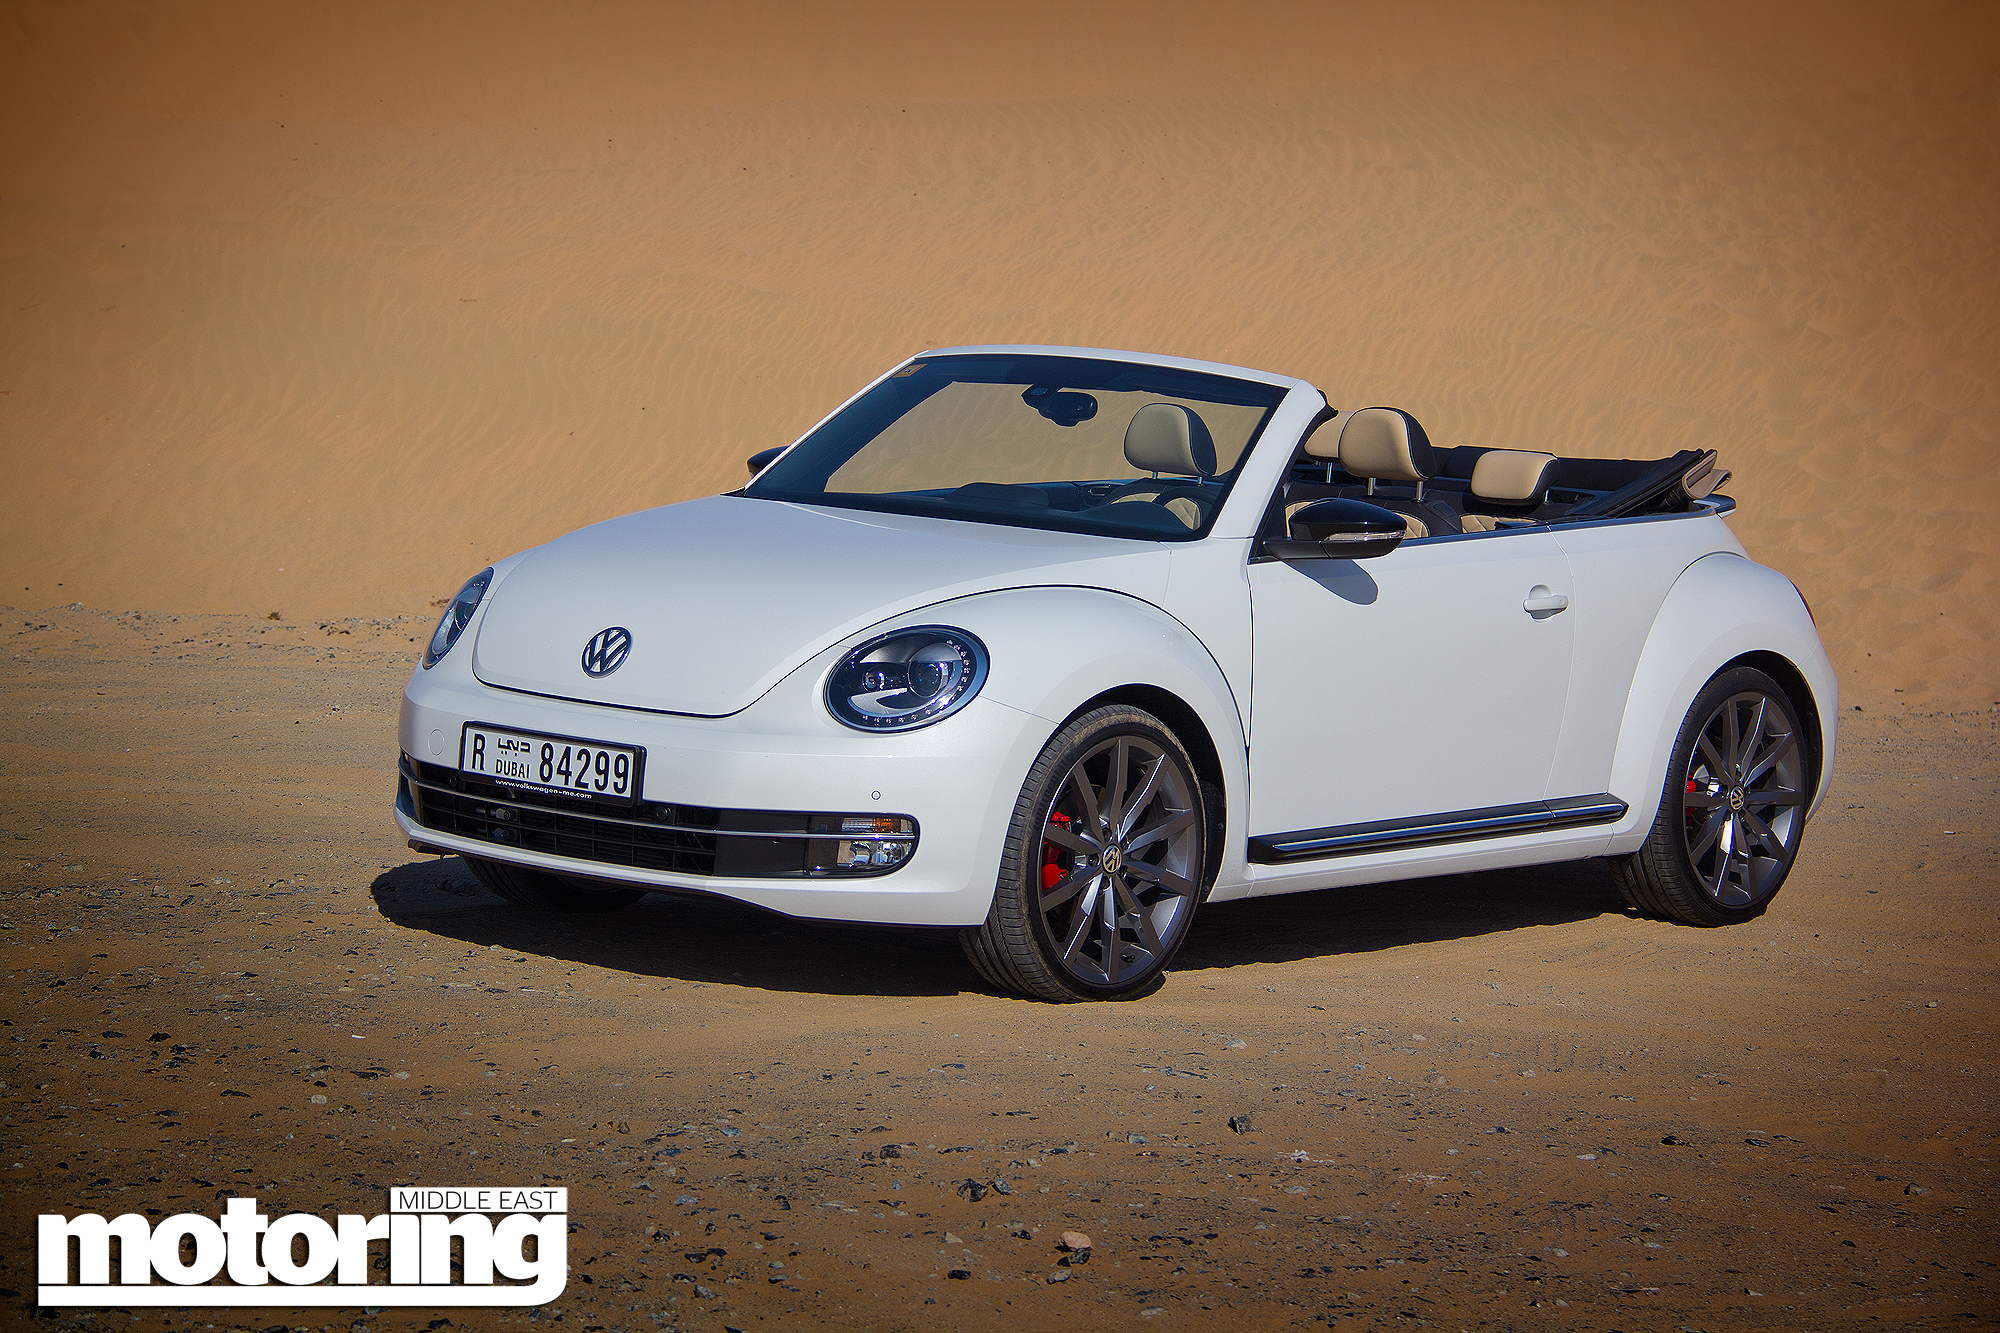 2016 Volkswagen Beetle CabrioletMotoring Middle East: Car news, Reviews and Buying guides